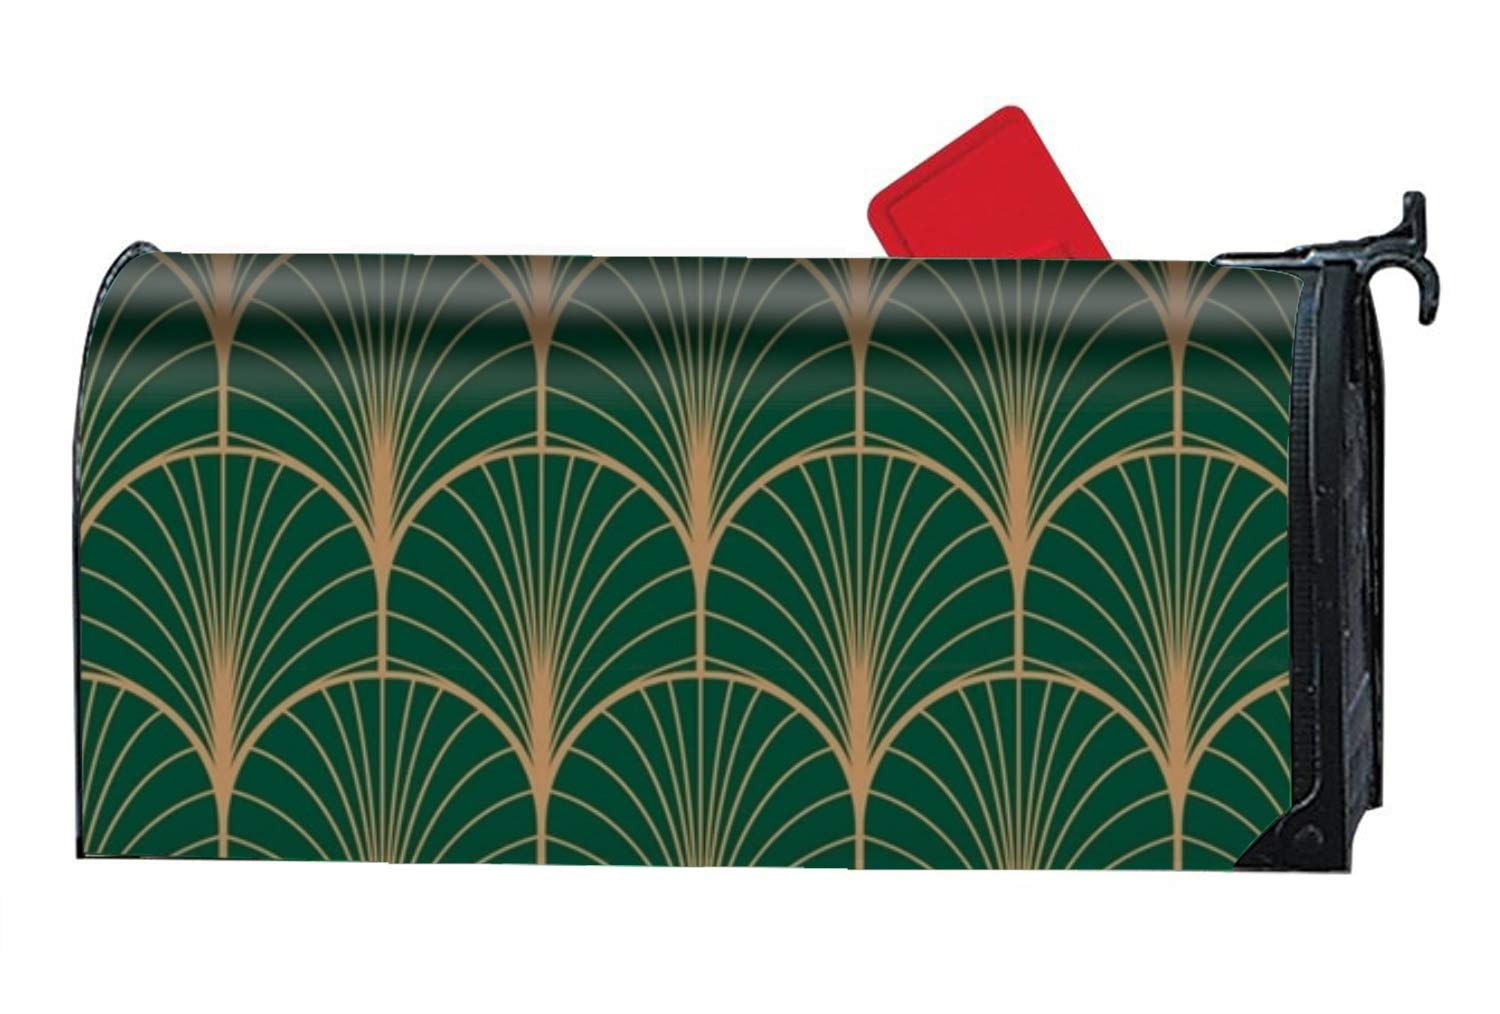 FANMIL Seasonal Mailbox Covers Art Deco Geometric Mail Box Cover for Spring,Summer,Fall/Autumn and Winter